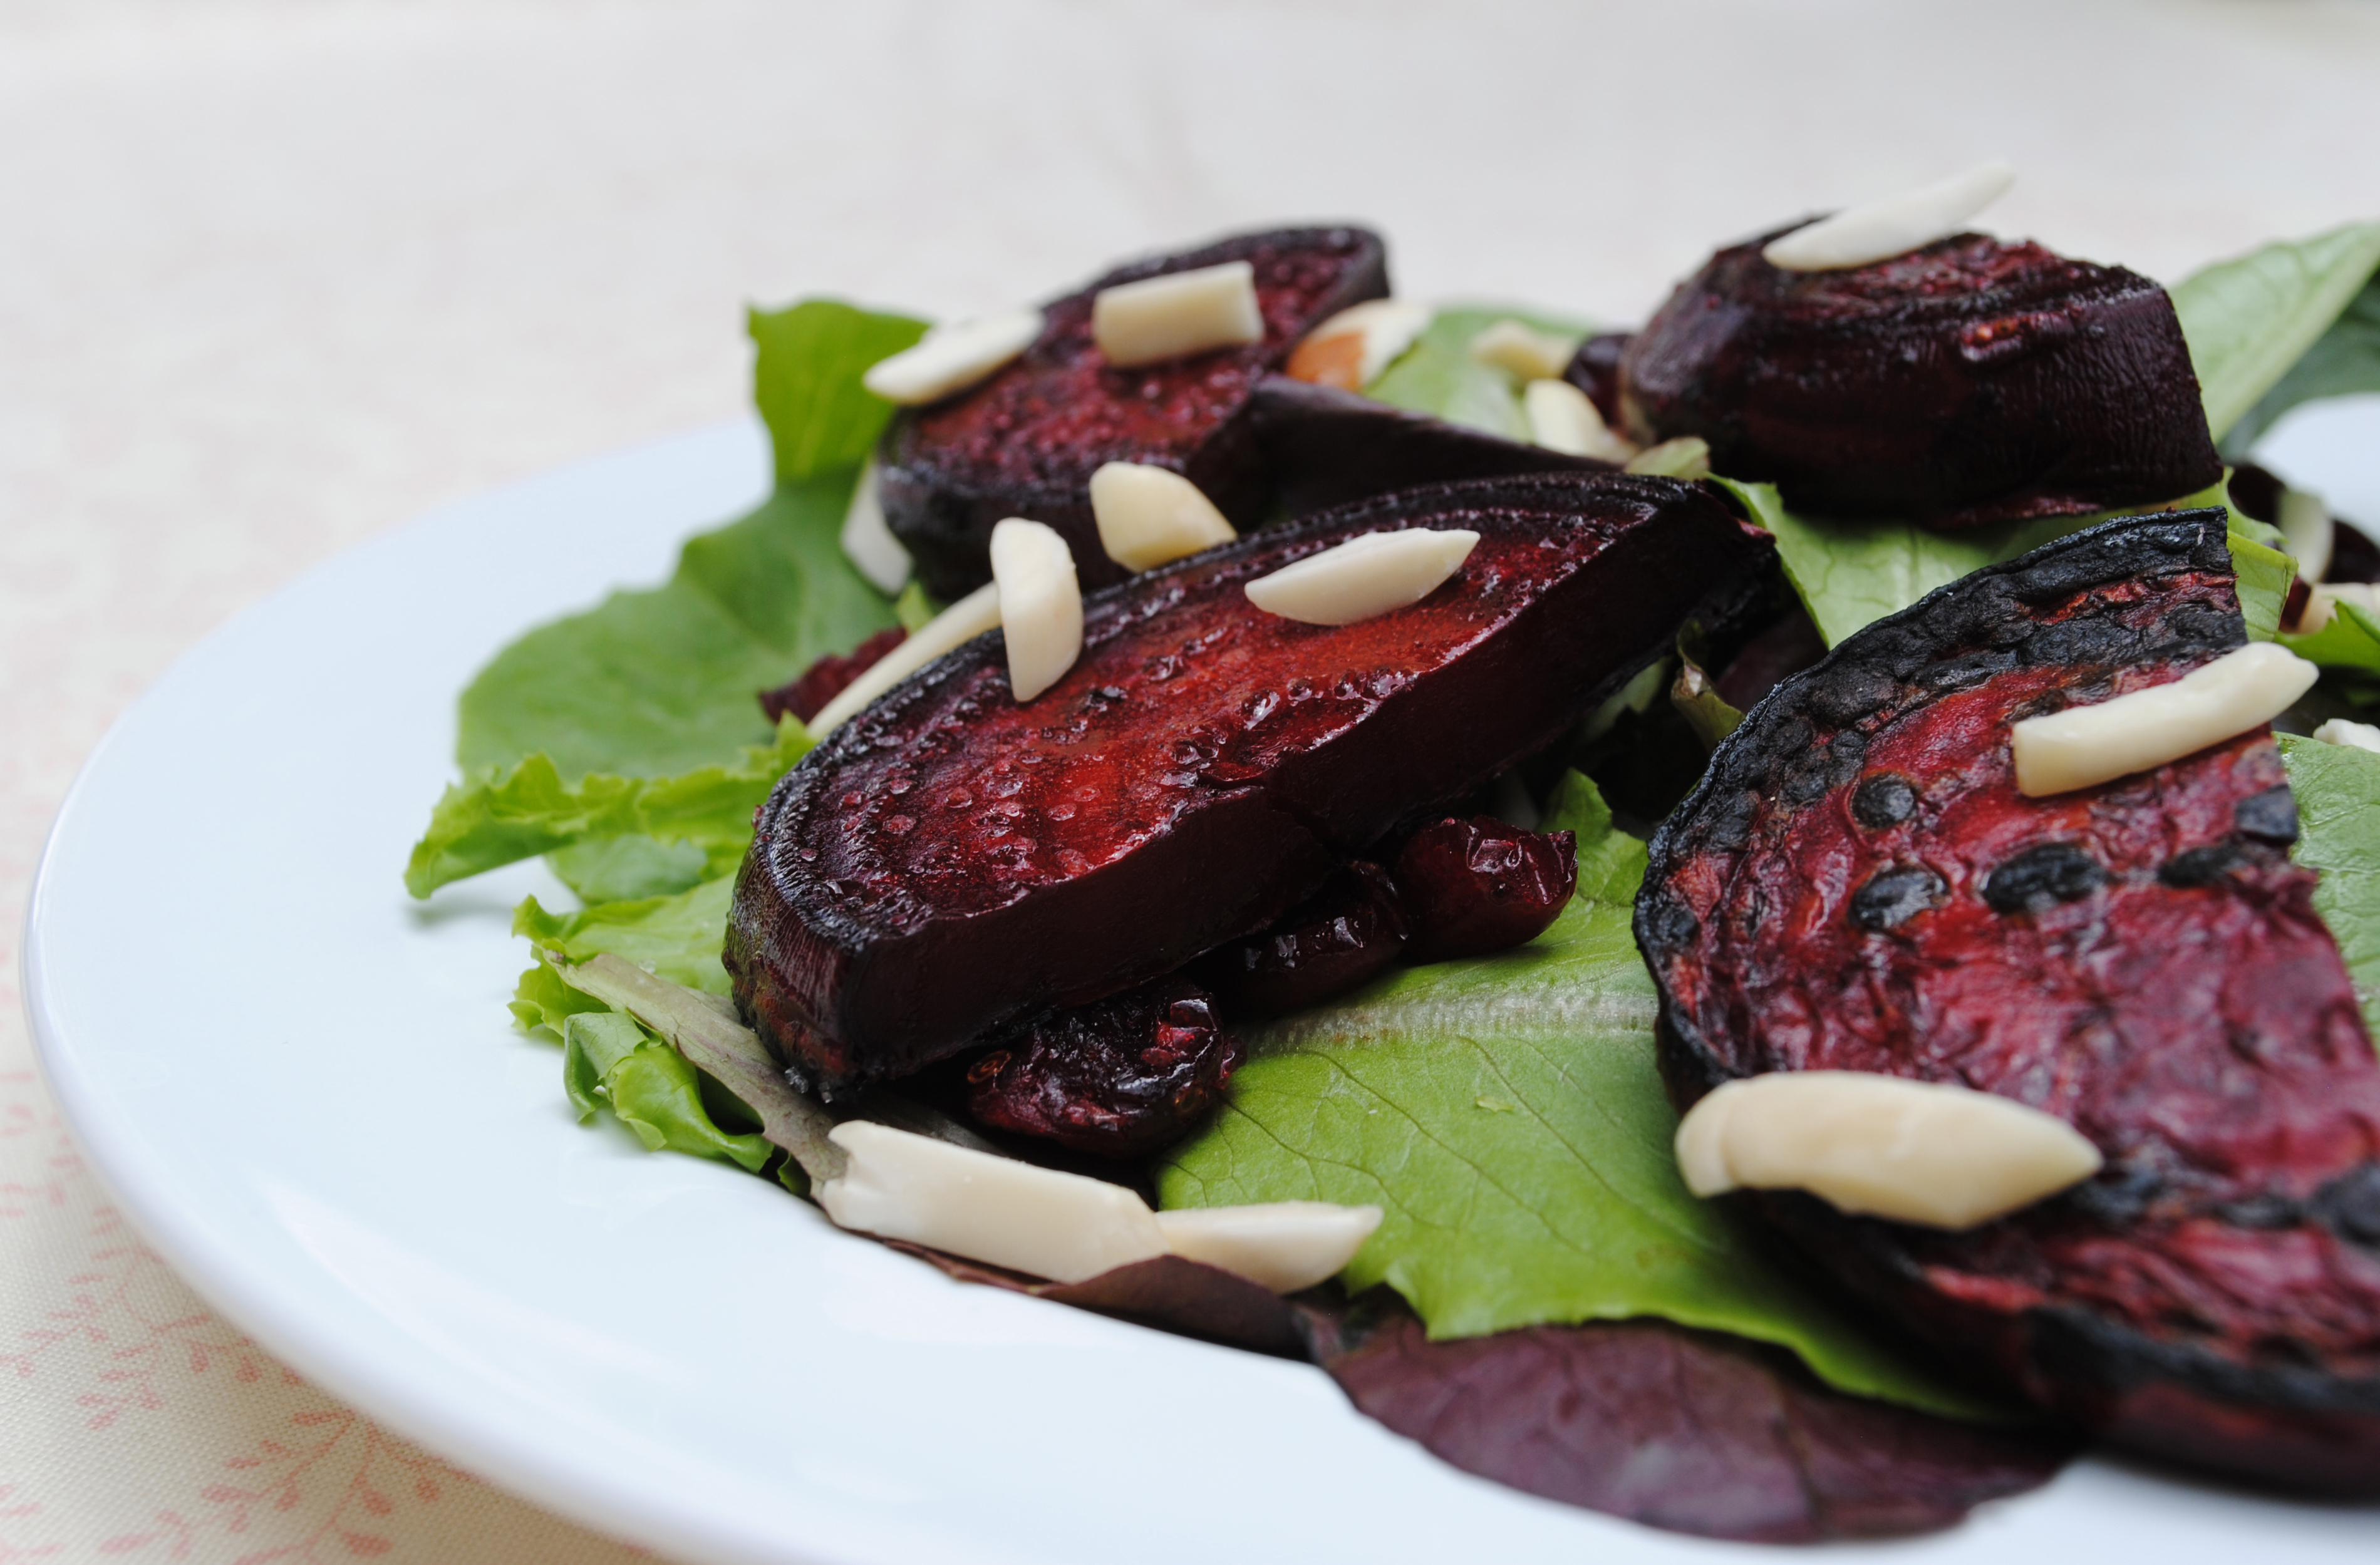 Vegan Grilled Beet Salad with Almonds and Dried Cranberries